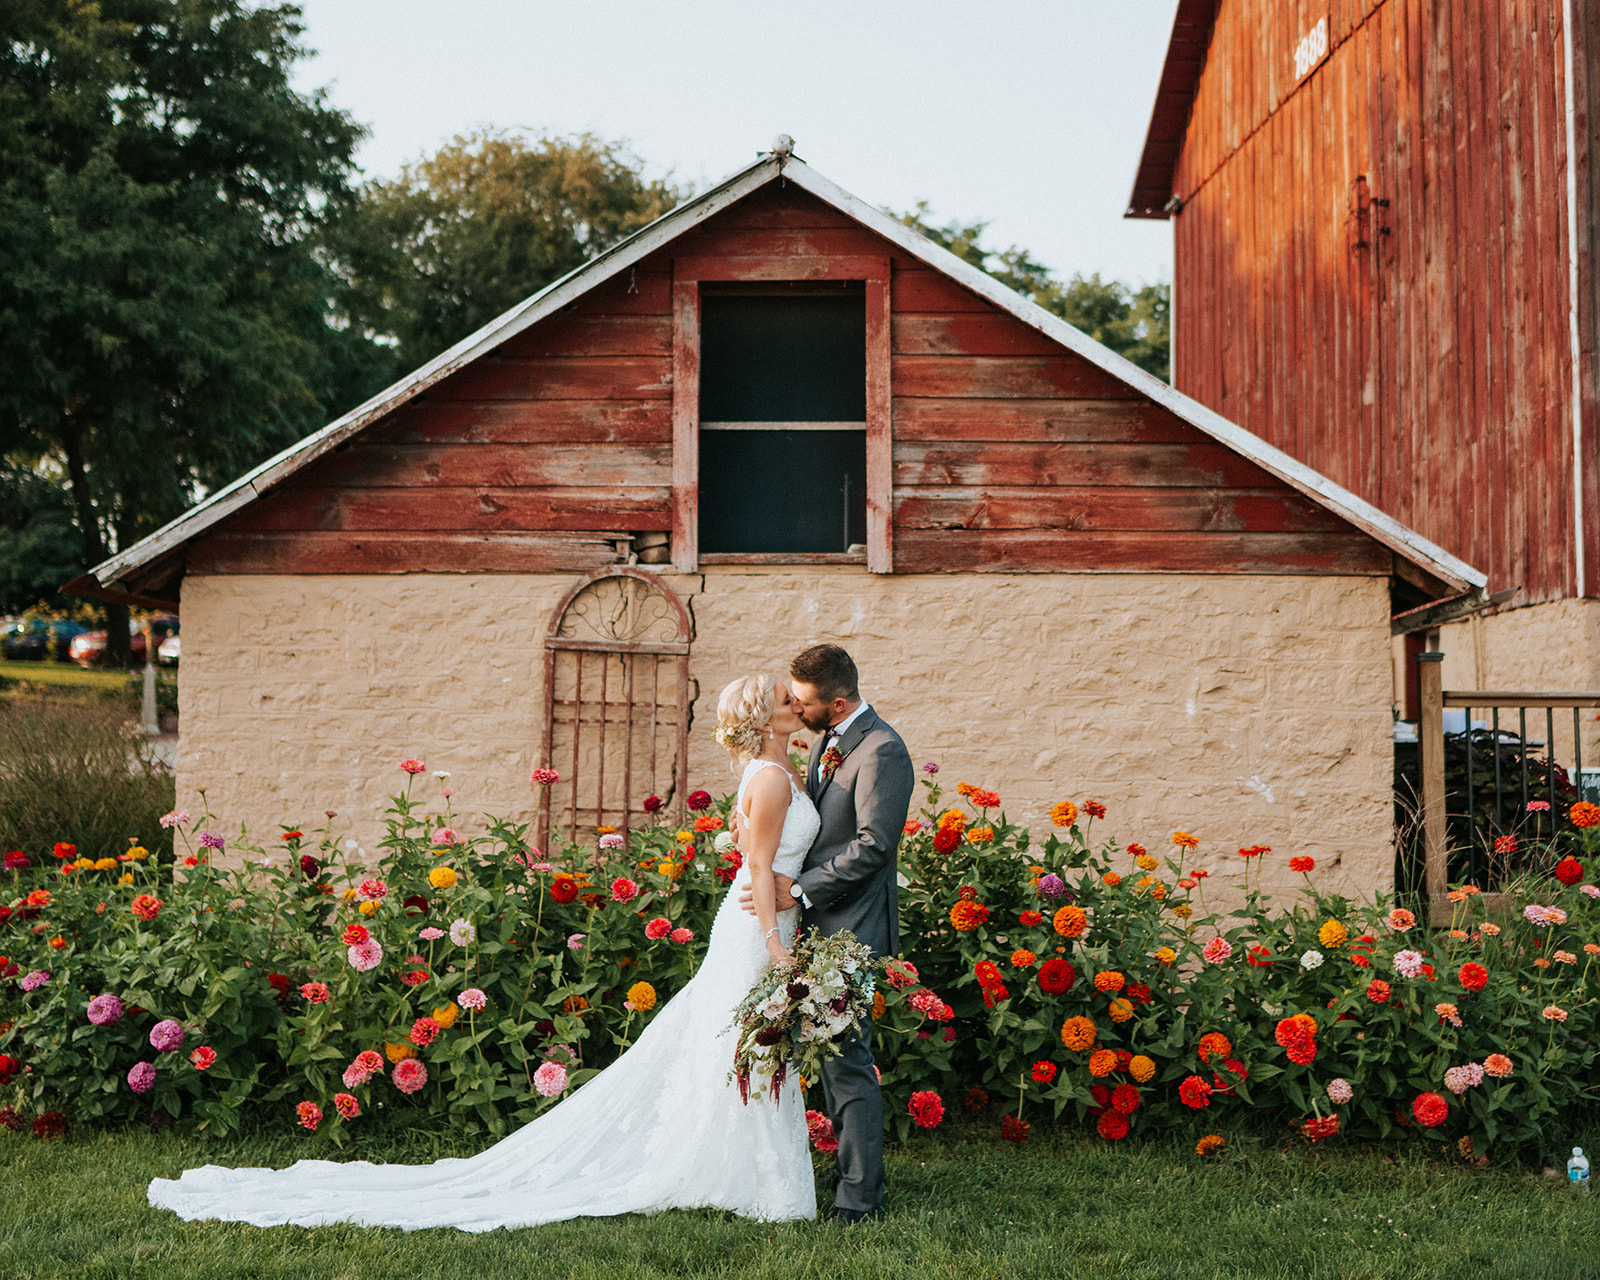 overthevineswisconsinwedding_0997.jpg